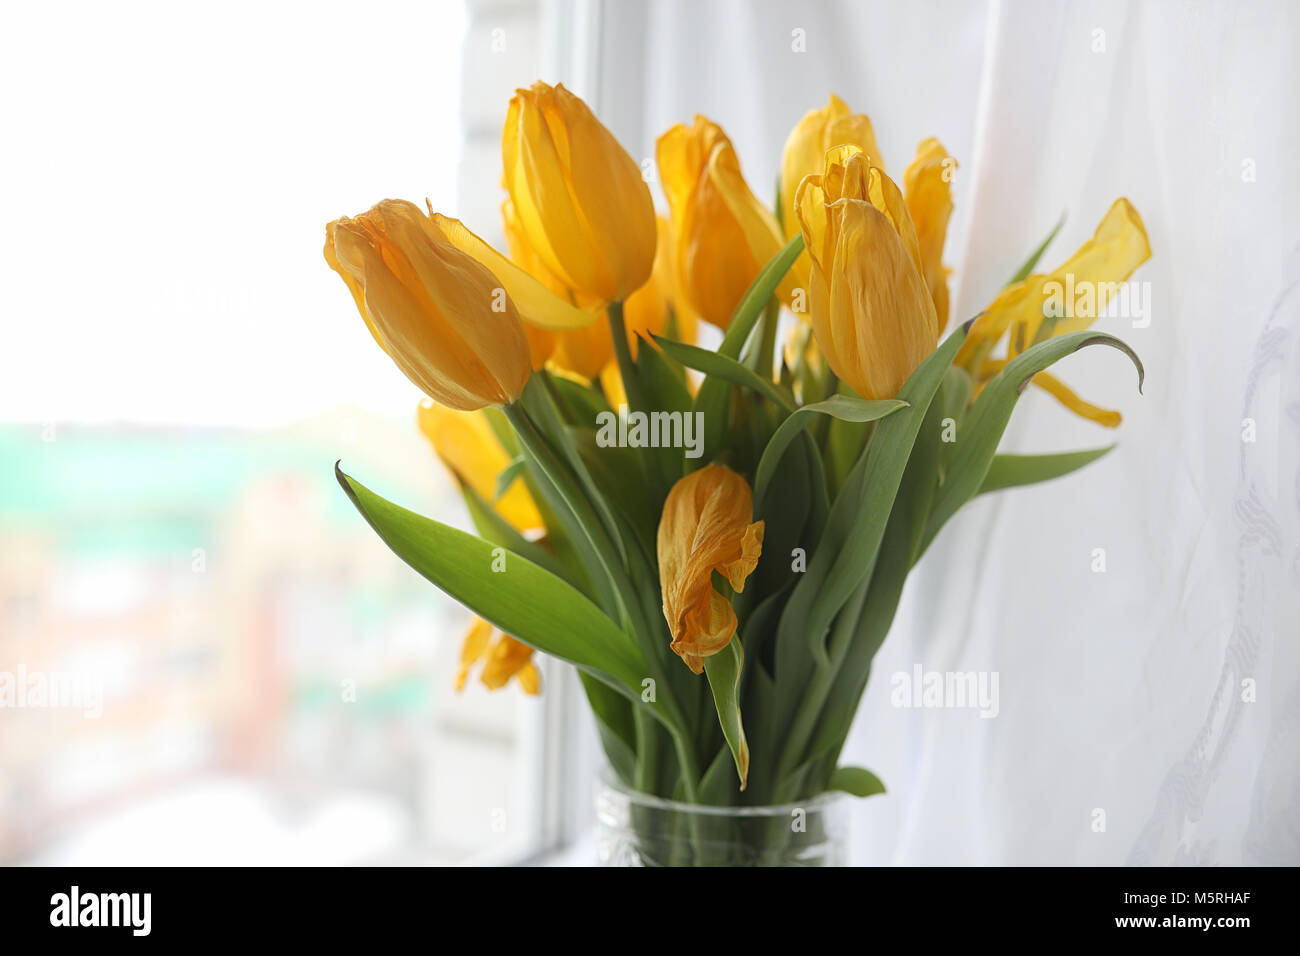 A bouquet of yellow tulips in a vase on the windowsill. A gift t - Stock Image